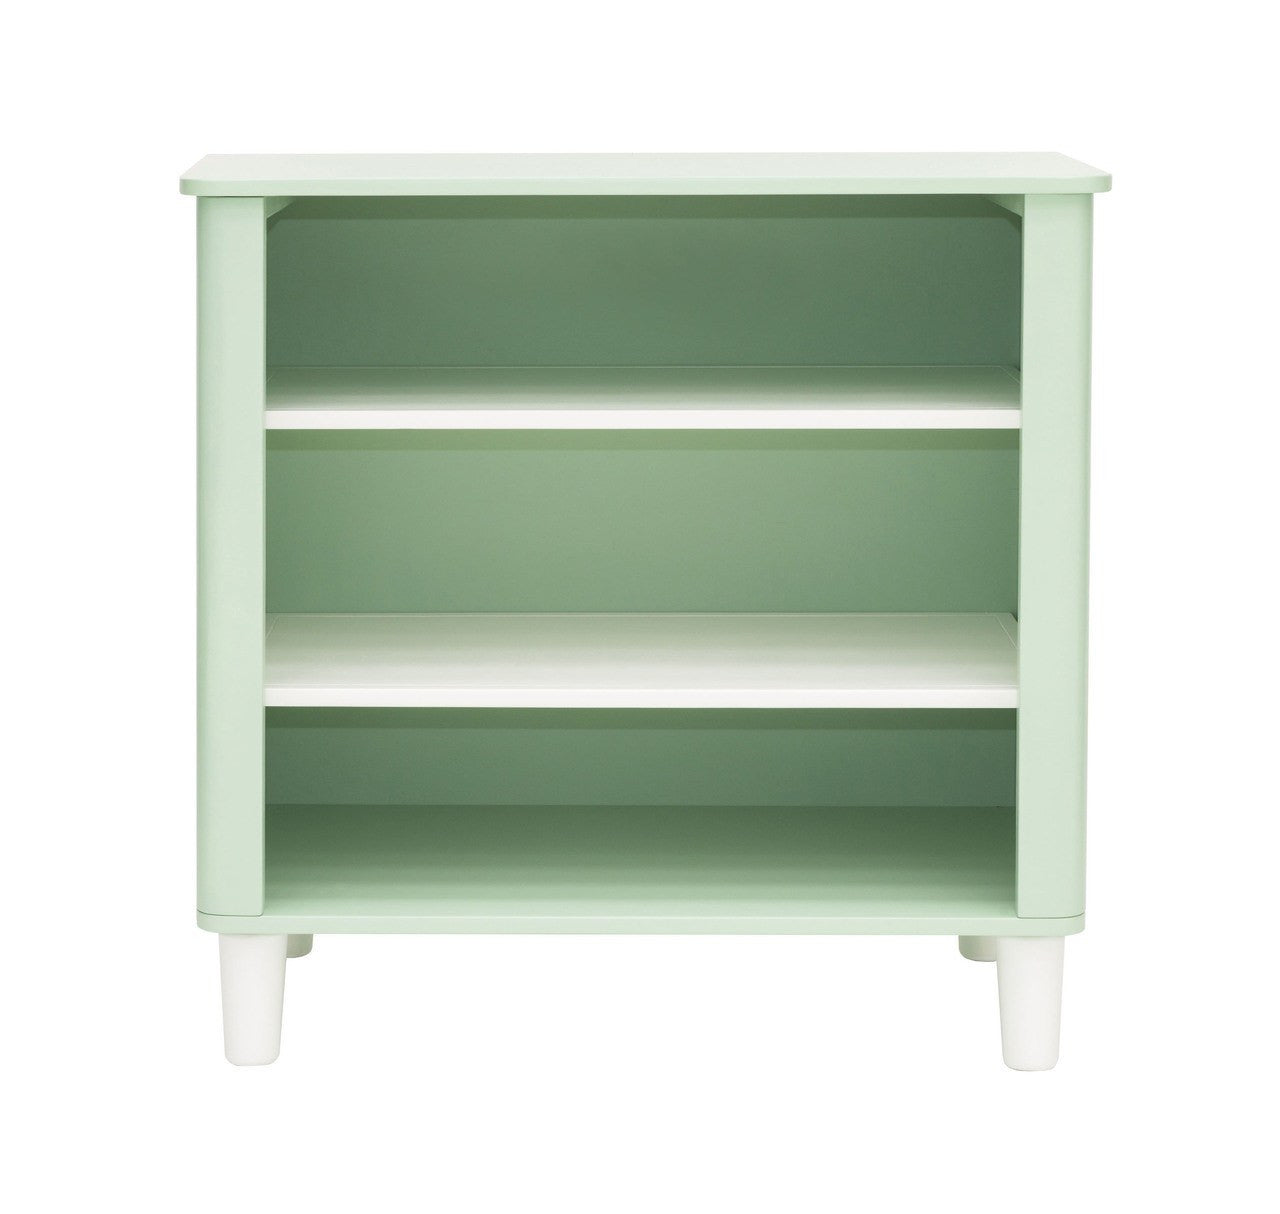 Incy Teeny Changing Table - Green